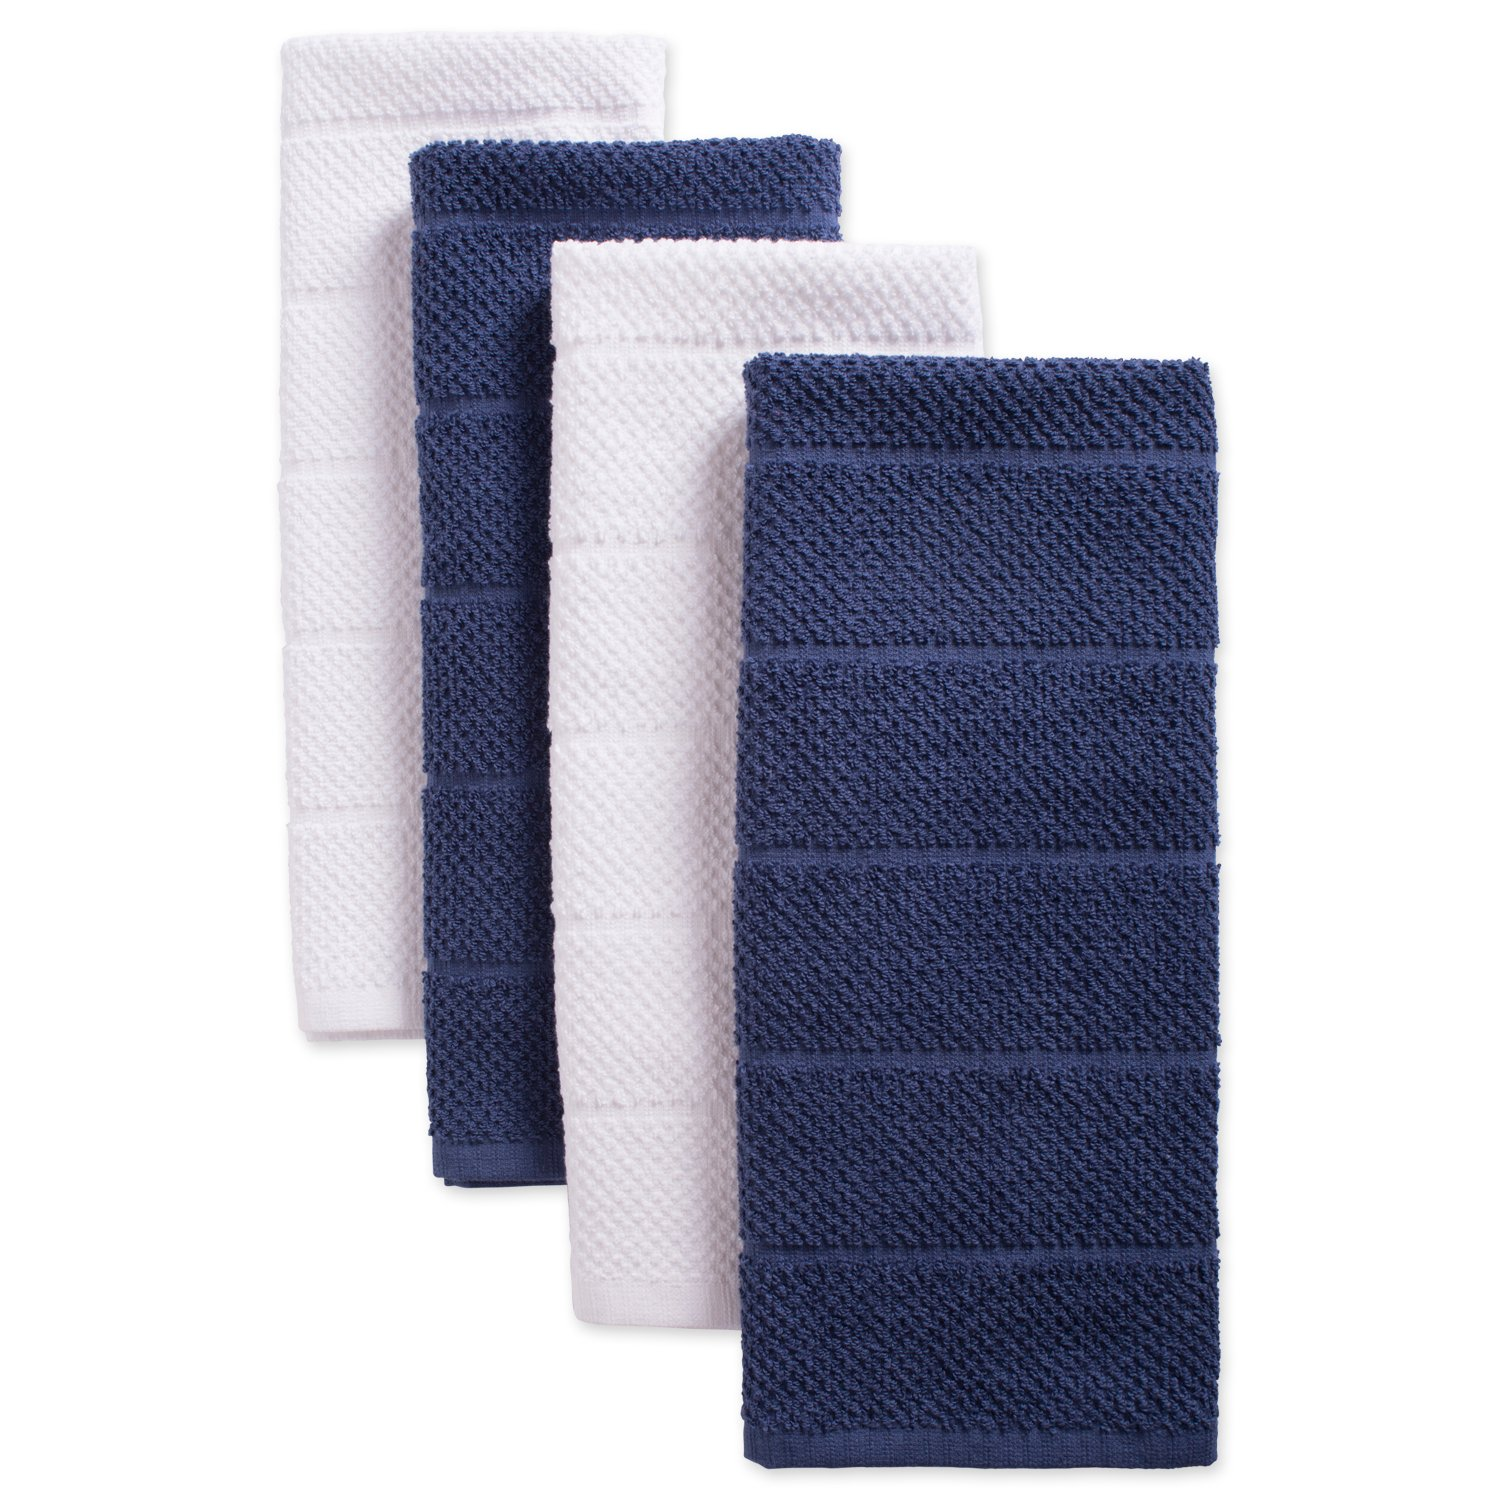 "DII Cotton Luxury Chef Terry Dish Towels, 16x26"" Set of 4, Ultra-Absorbent Cleaning Drying Kitchen Towels-French Blue/White"